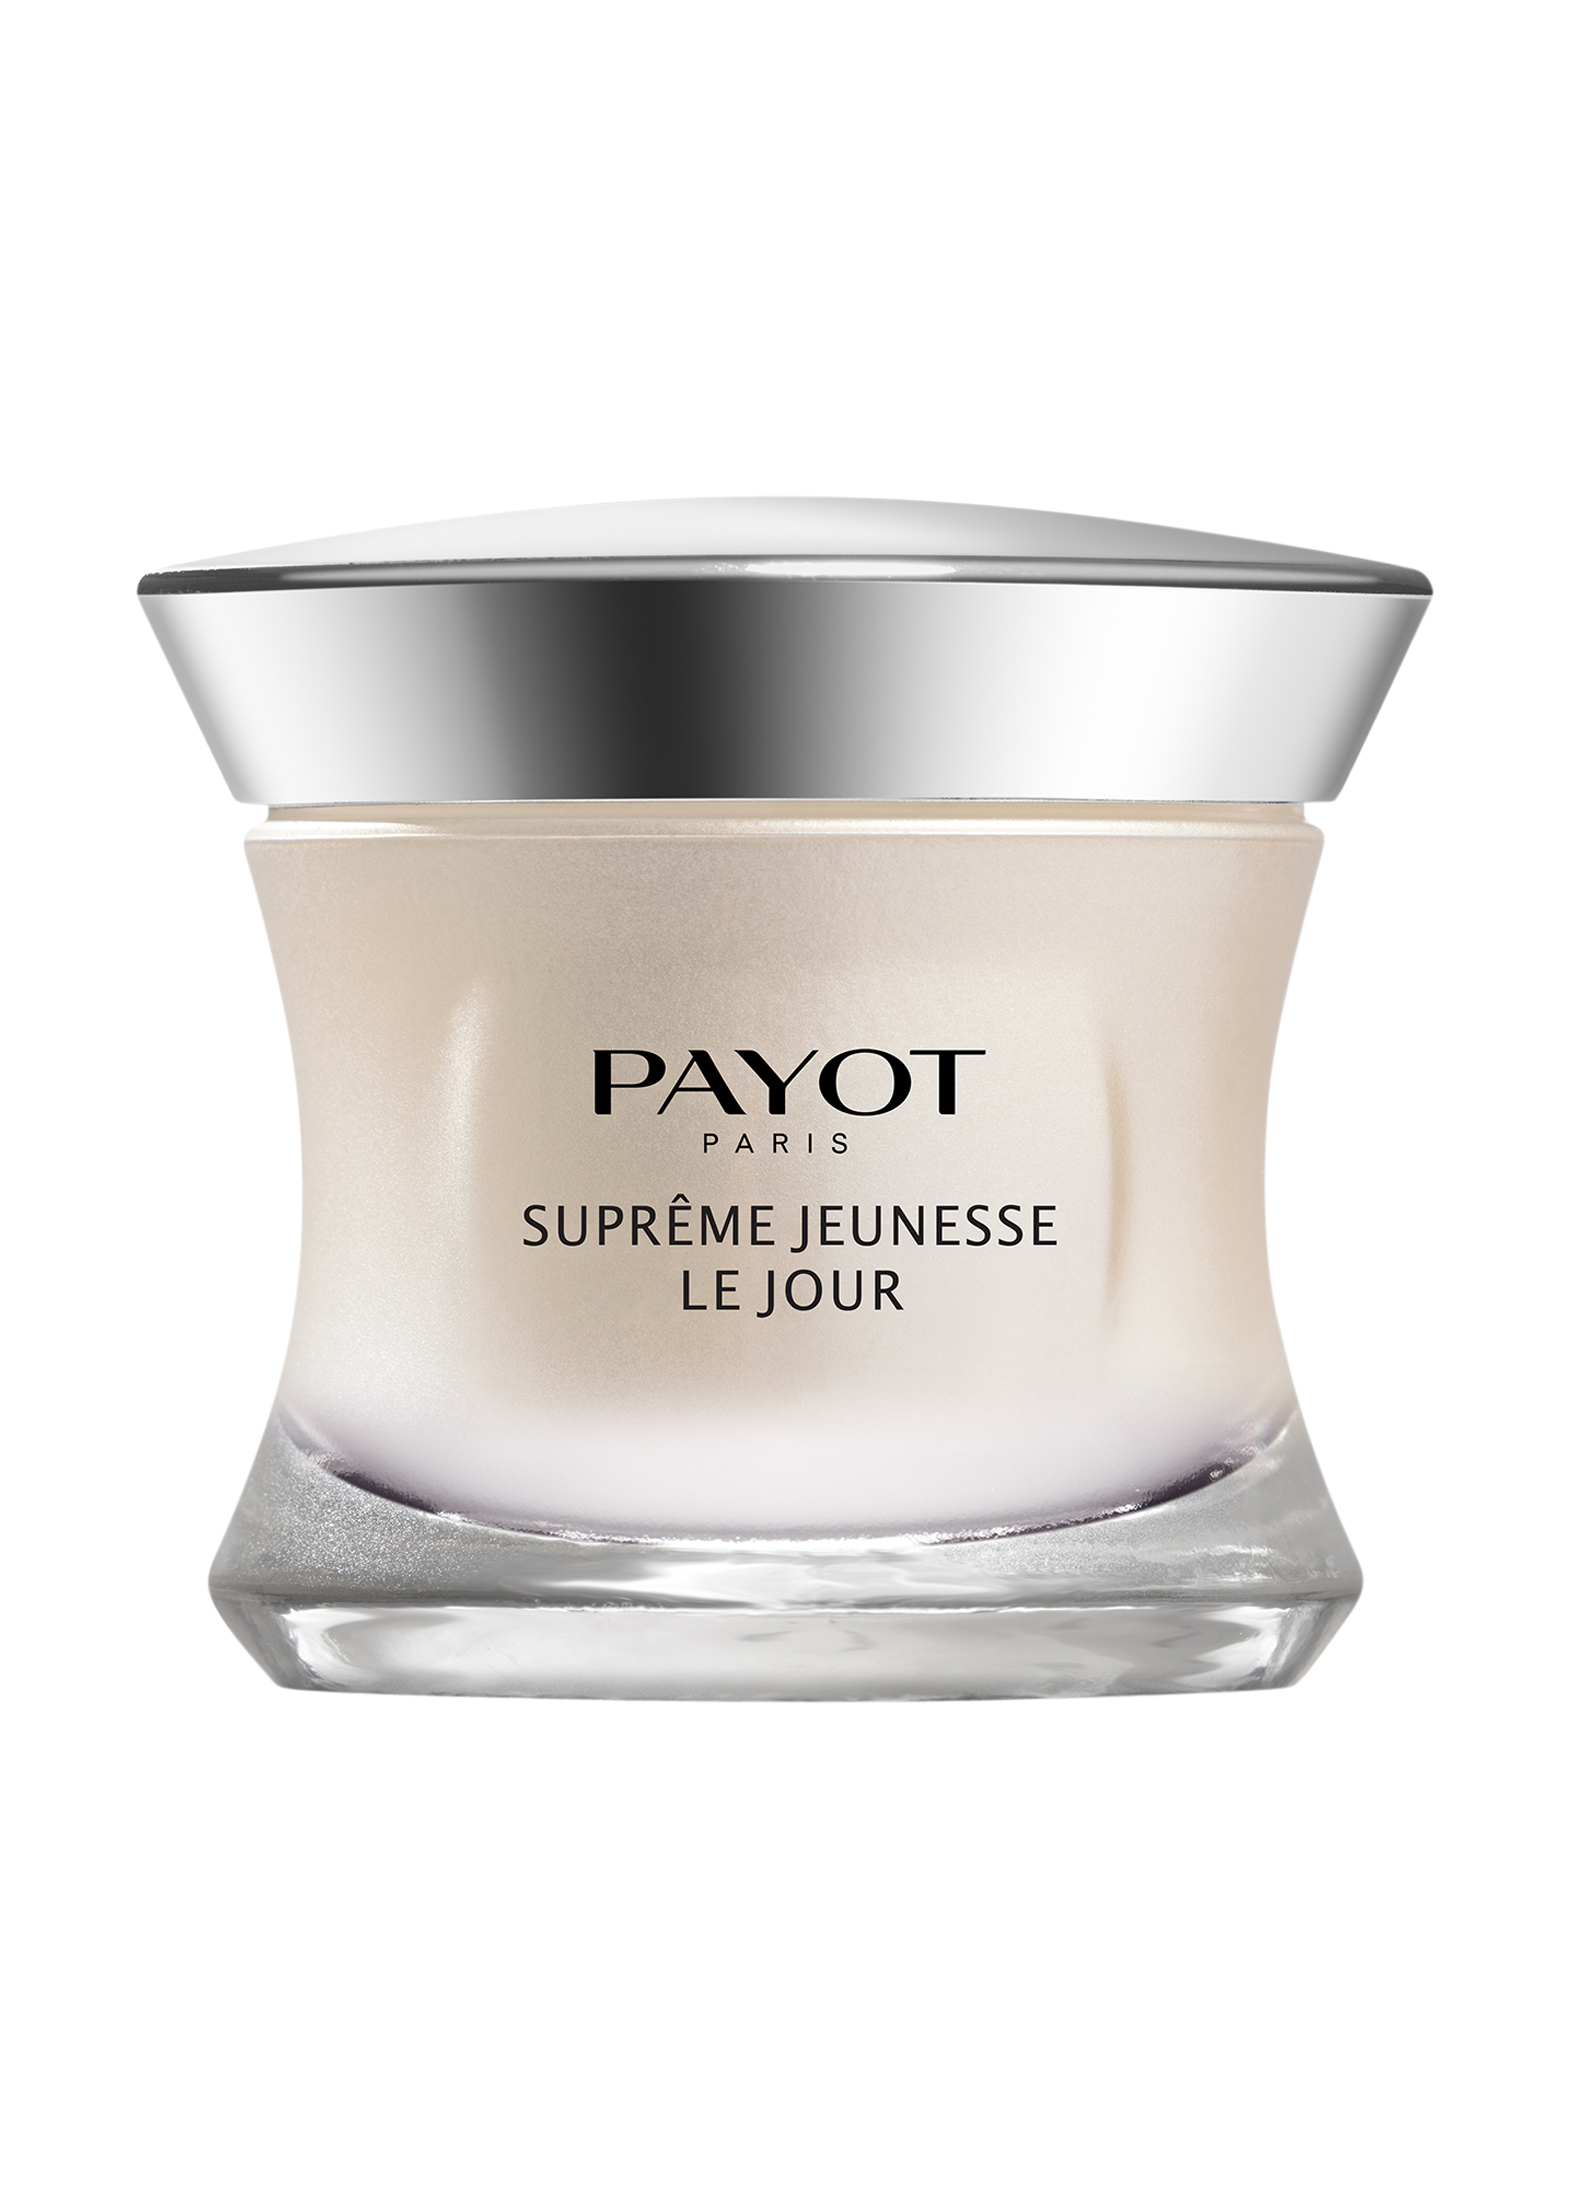 PAYOT, SUPREME JEUNESSE JOUR 50ML image number 0